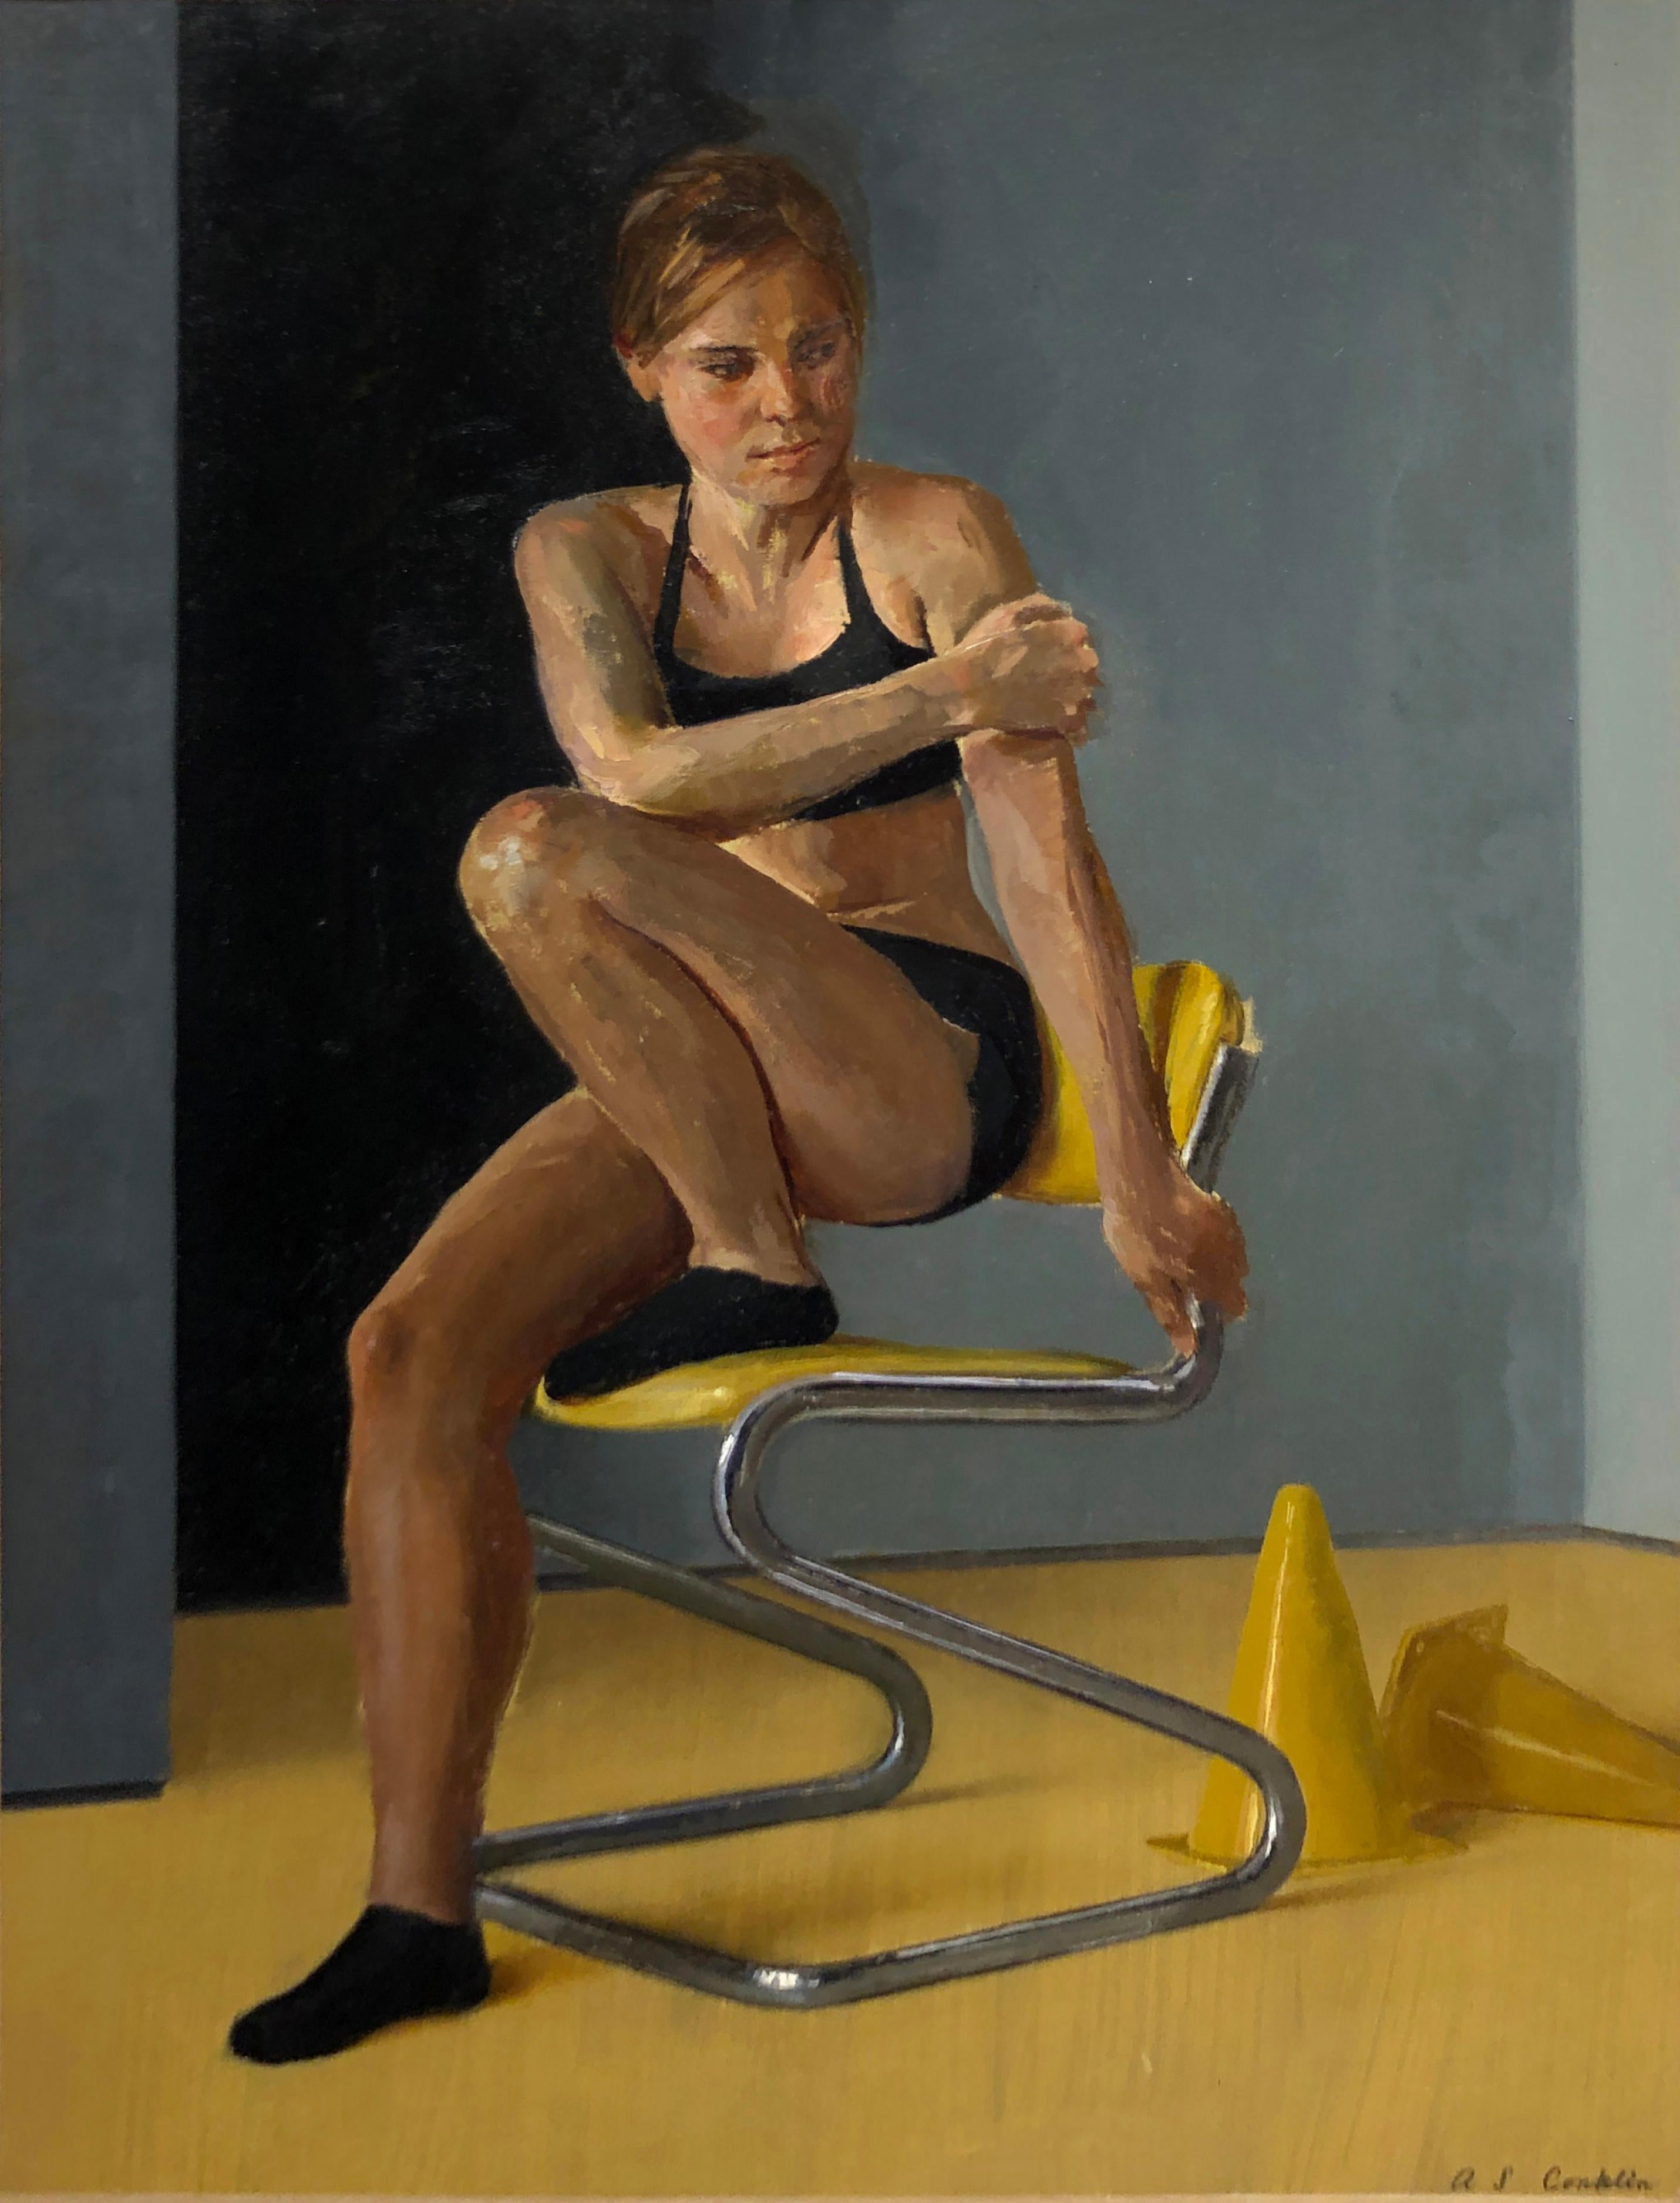 Maro on Chrome and Yellow Vinyl Modern Side Chair - Original Oil Painting